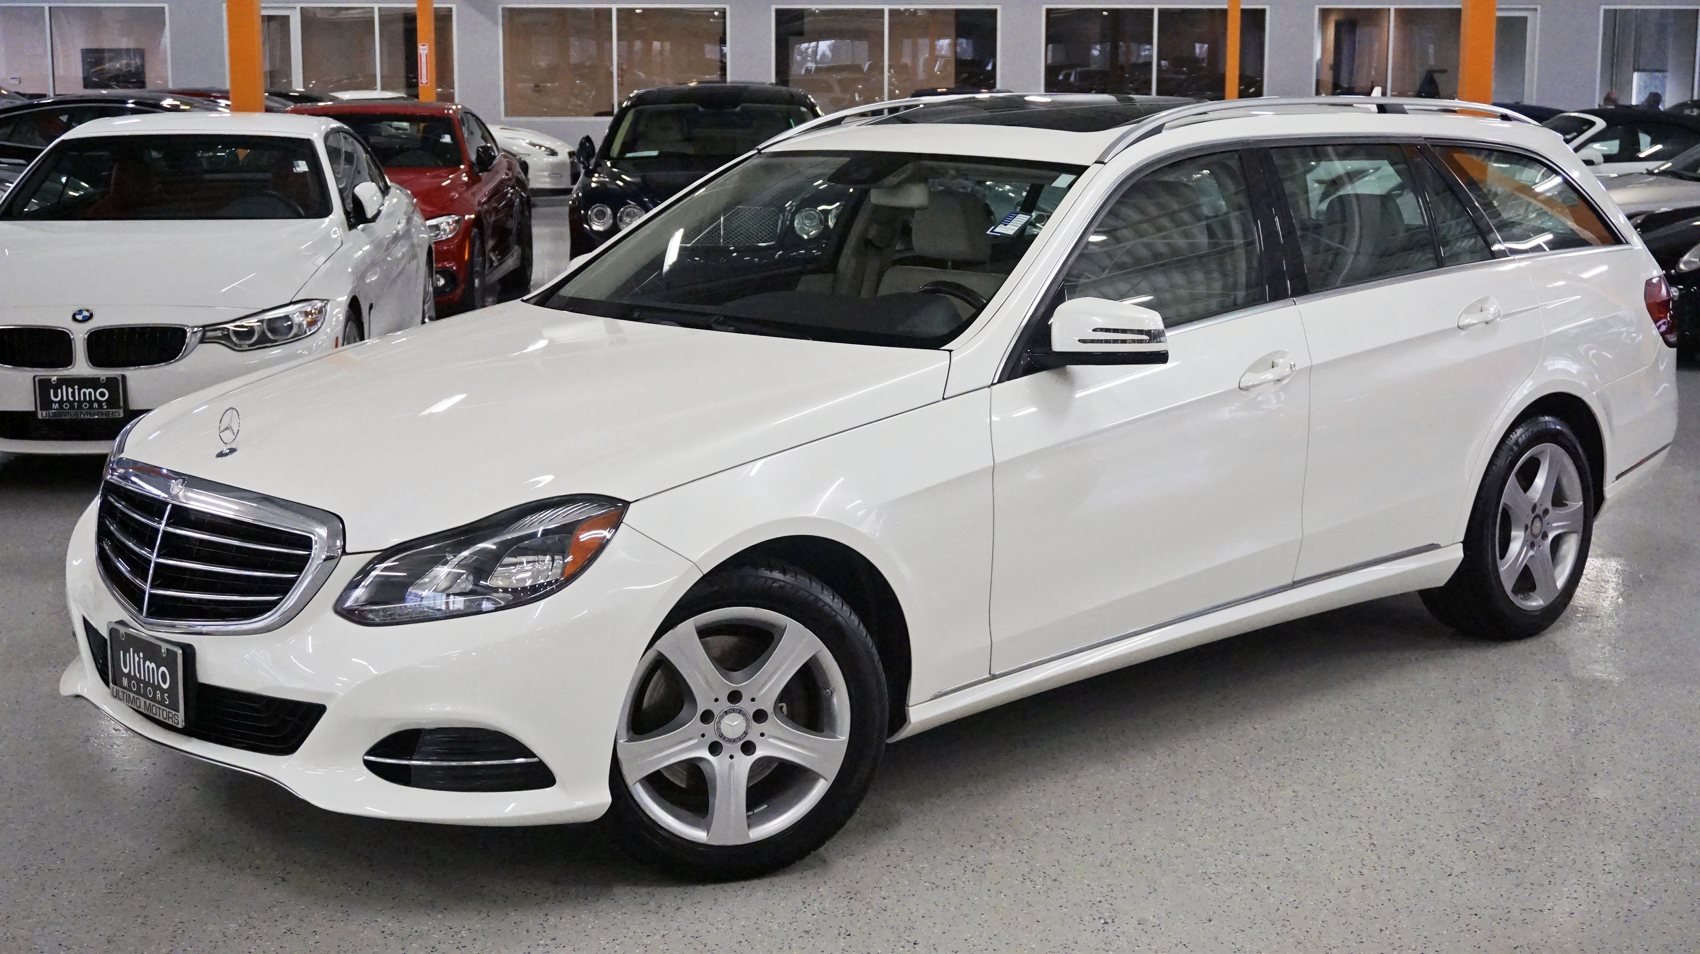 Pre-Owned 2014 Mercedes-Benz E-Class E 350 Luxury, Premium package, Lane tracking, 7 Seater